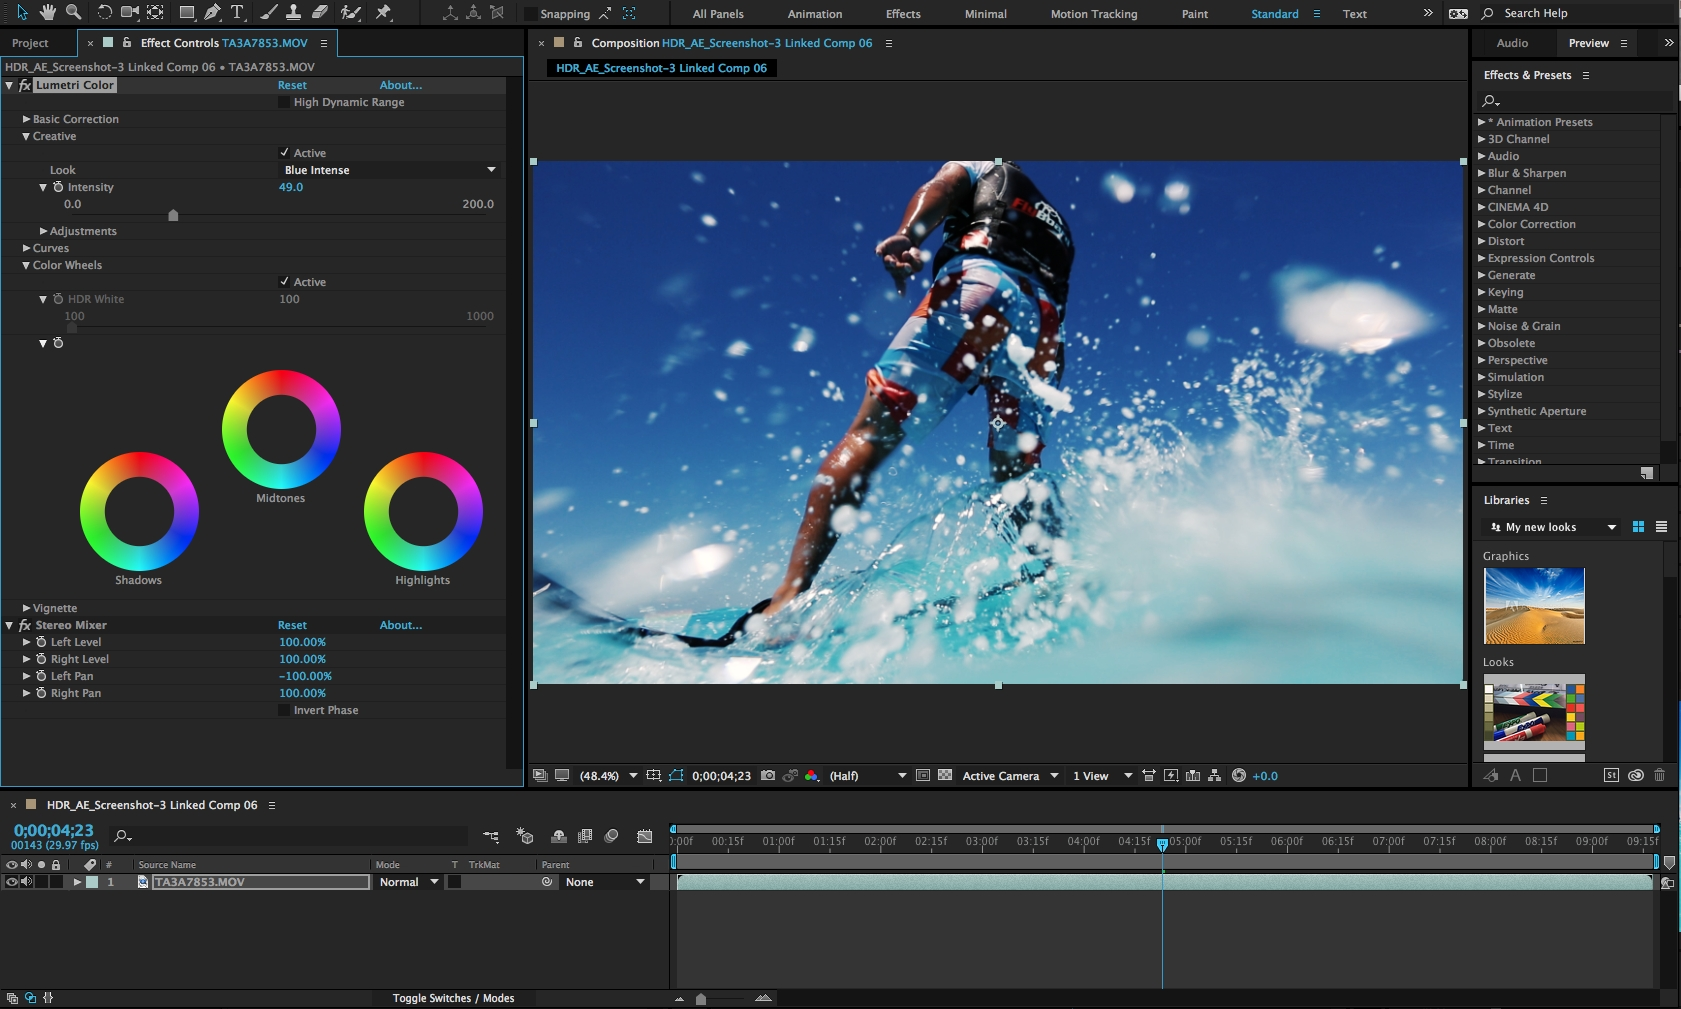 The next release of Adobe After Effects CC 6